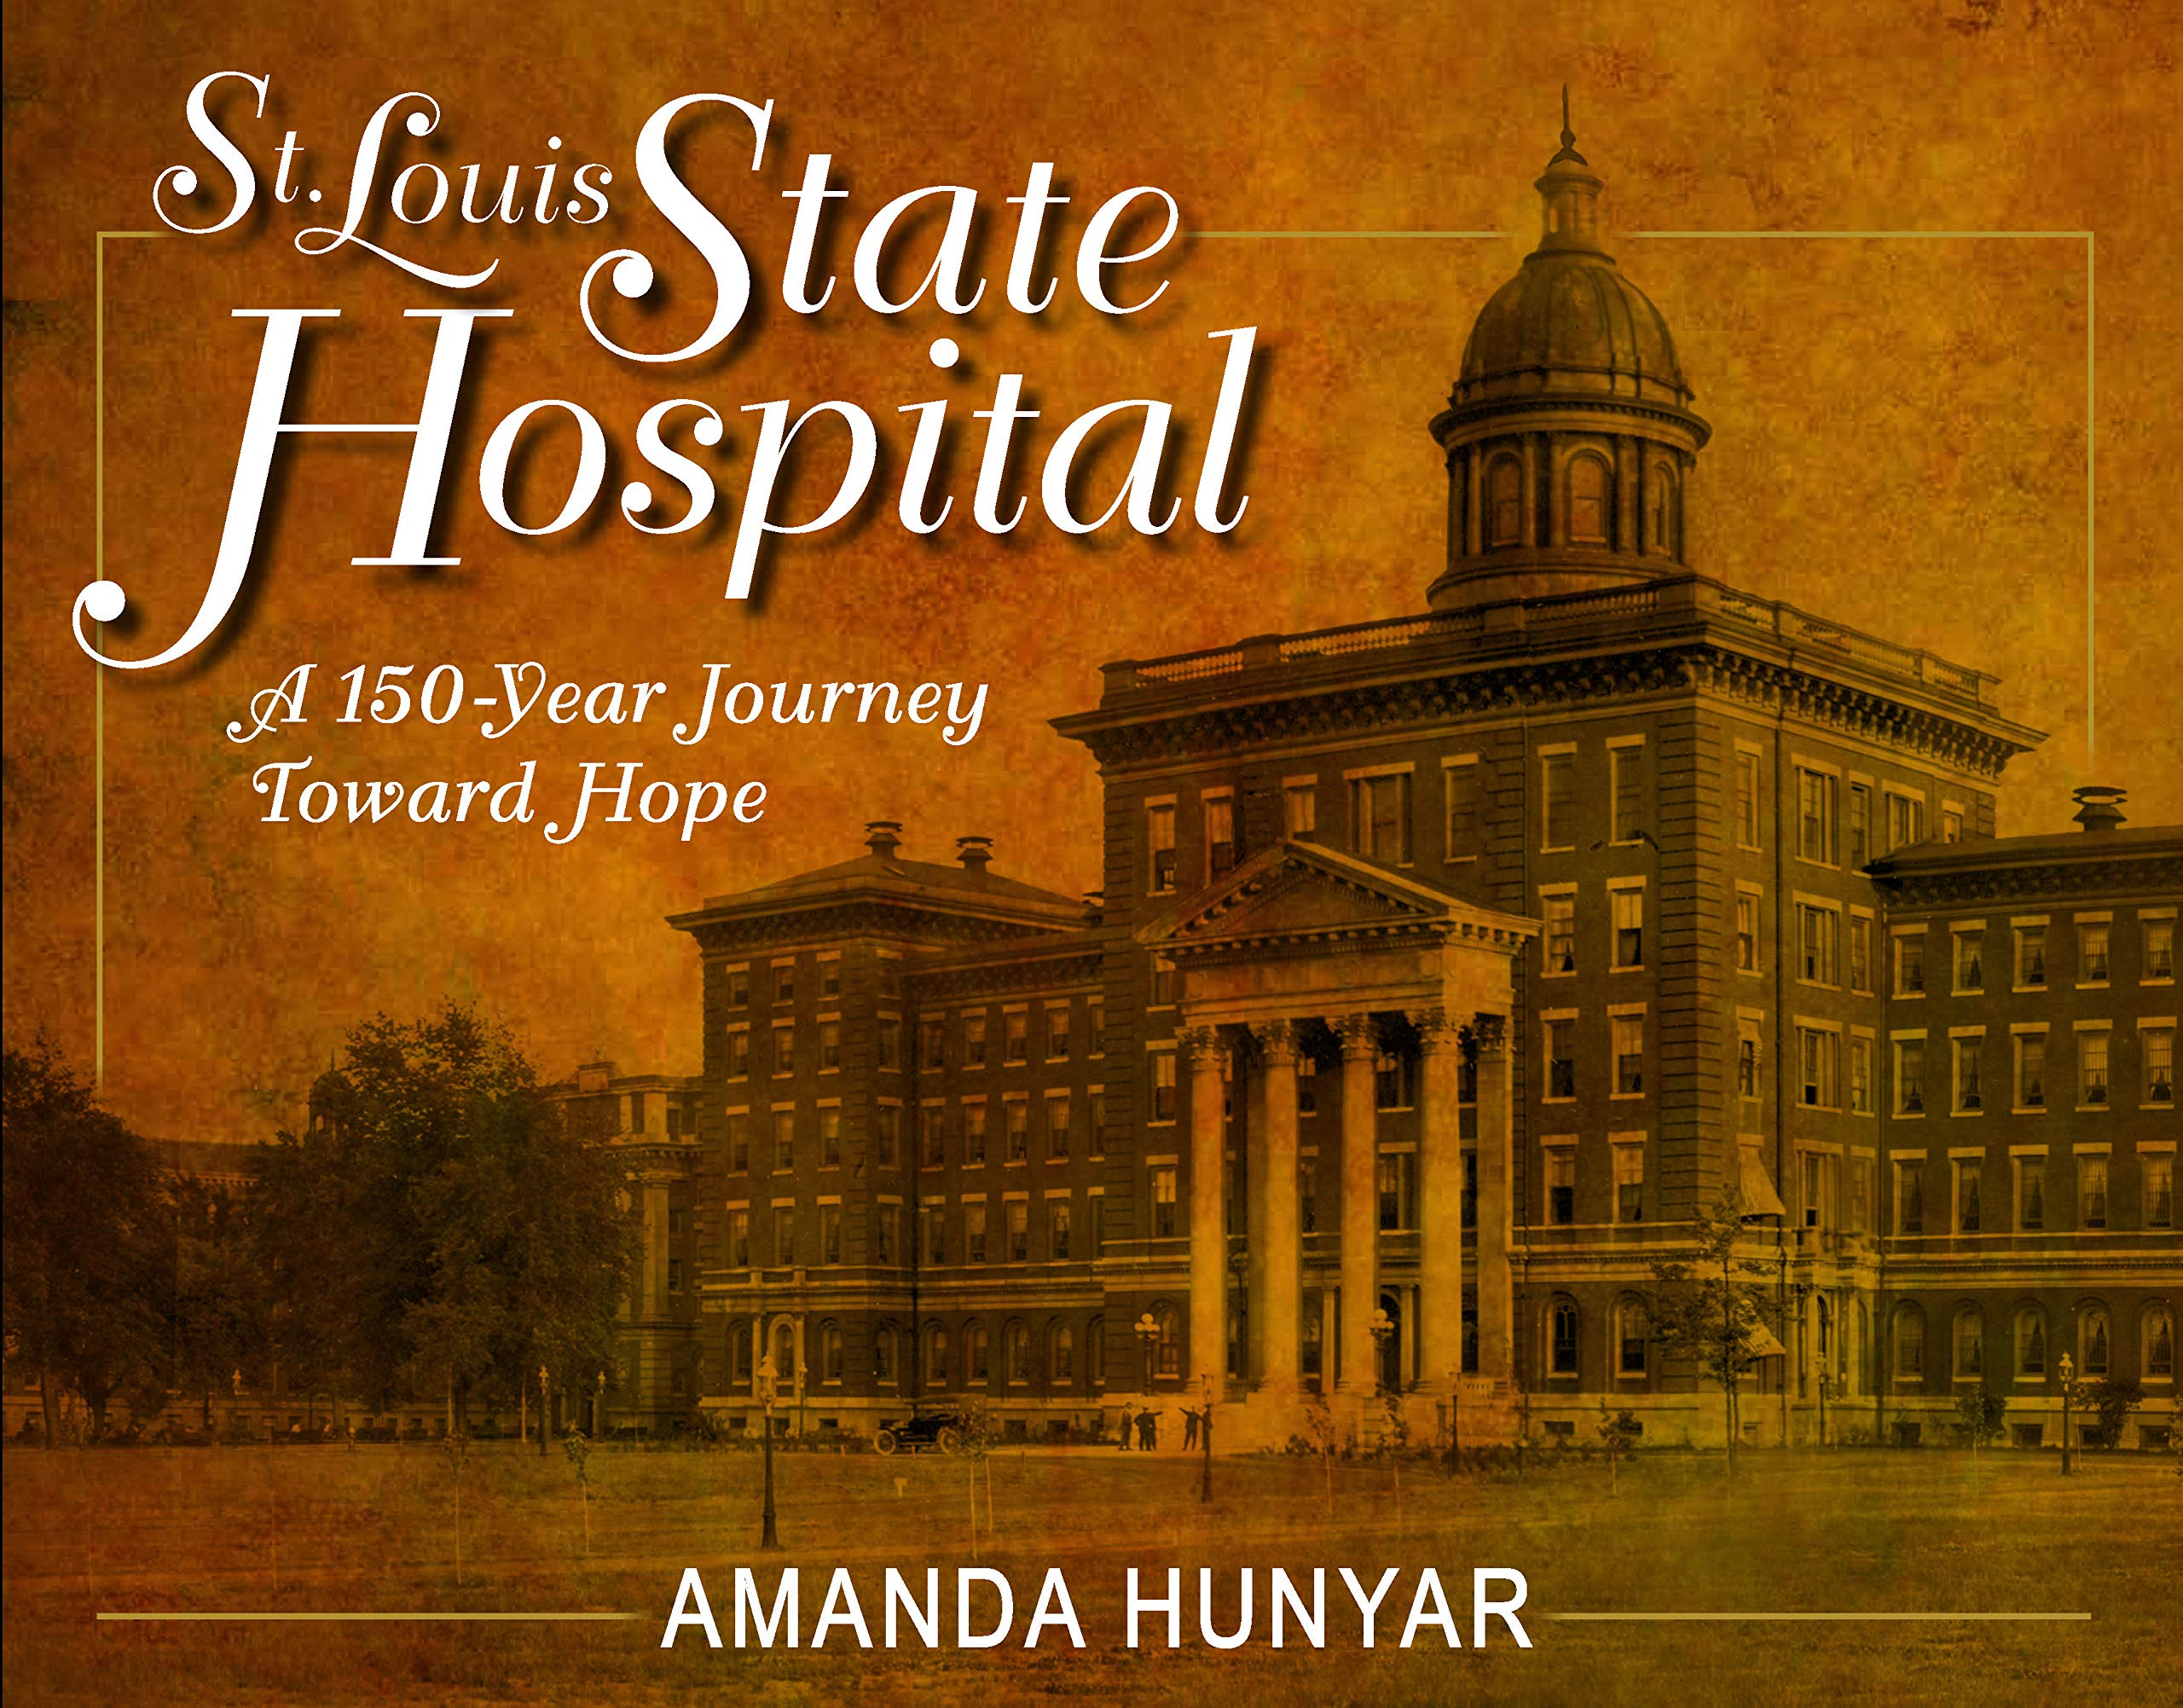 Download St. Louis State Hospital: A 150-Year Journey Toward Hope 